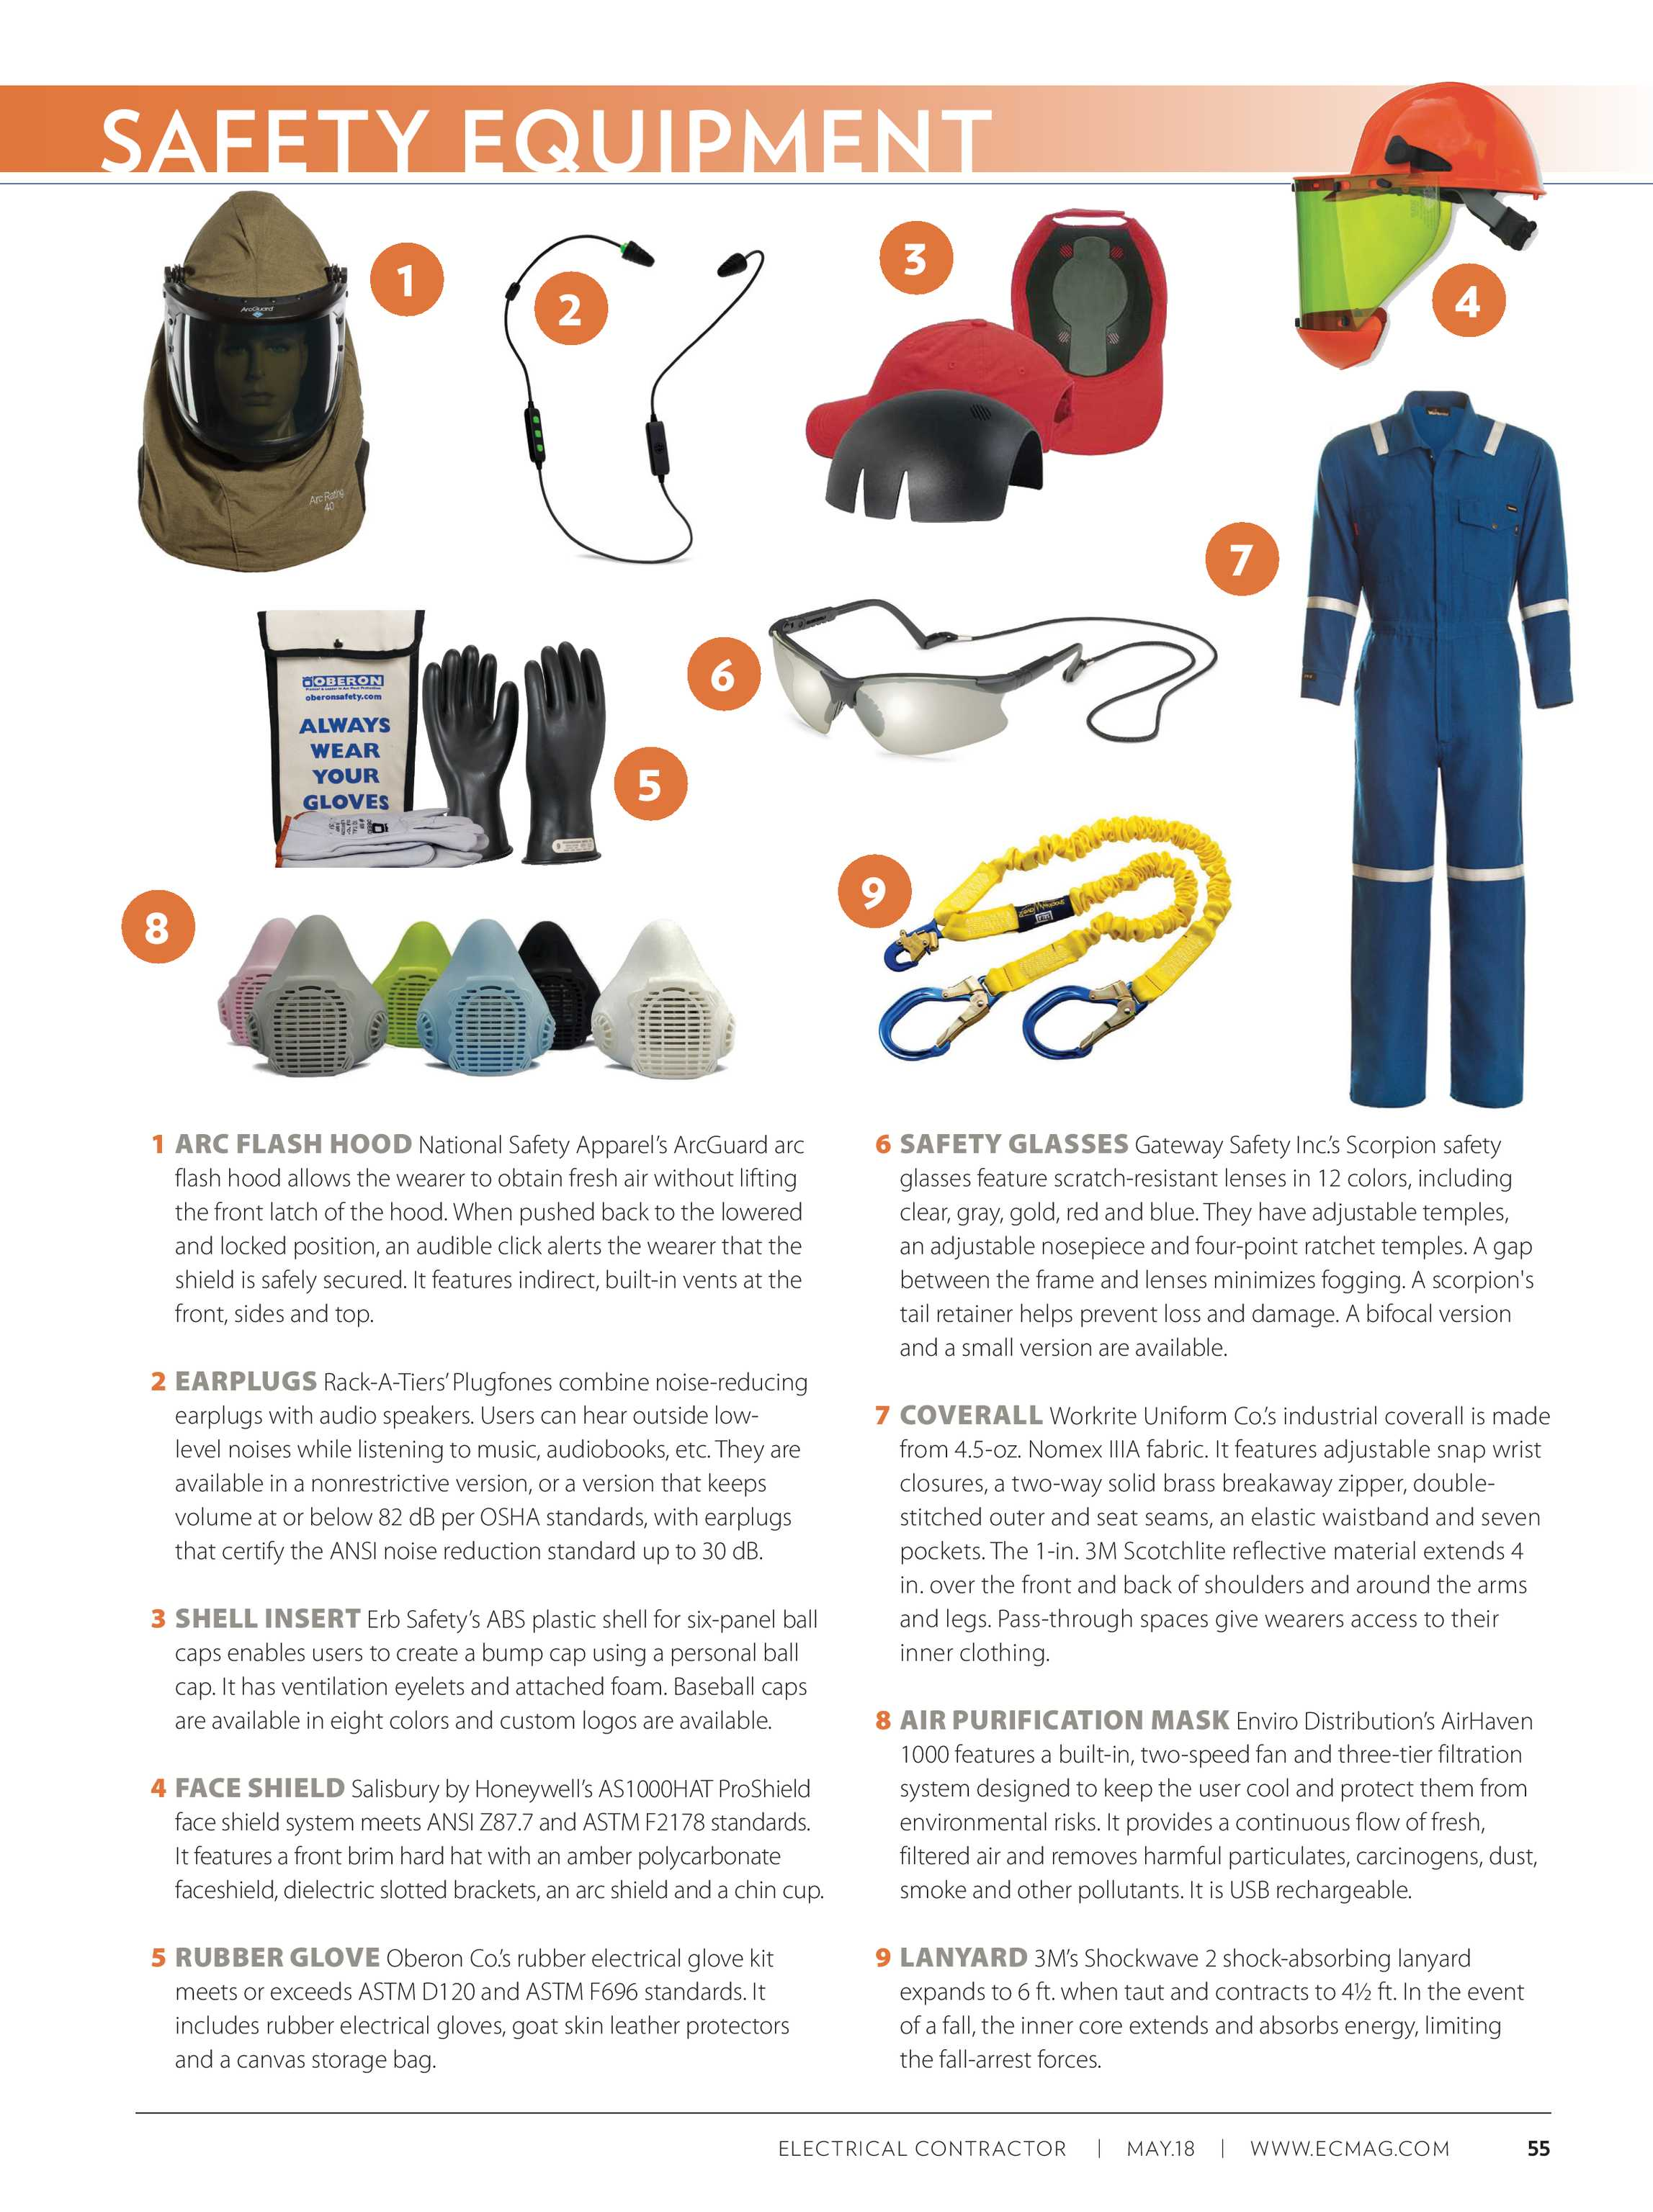 61d49cd82196 Electrical Contractor - May 2018 - page 55